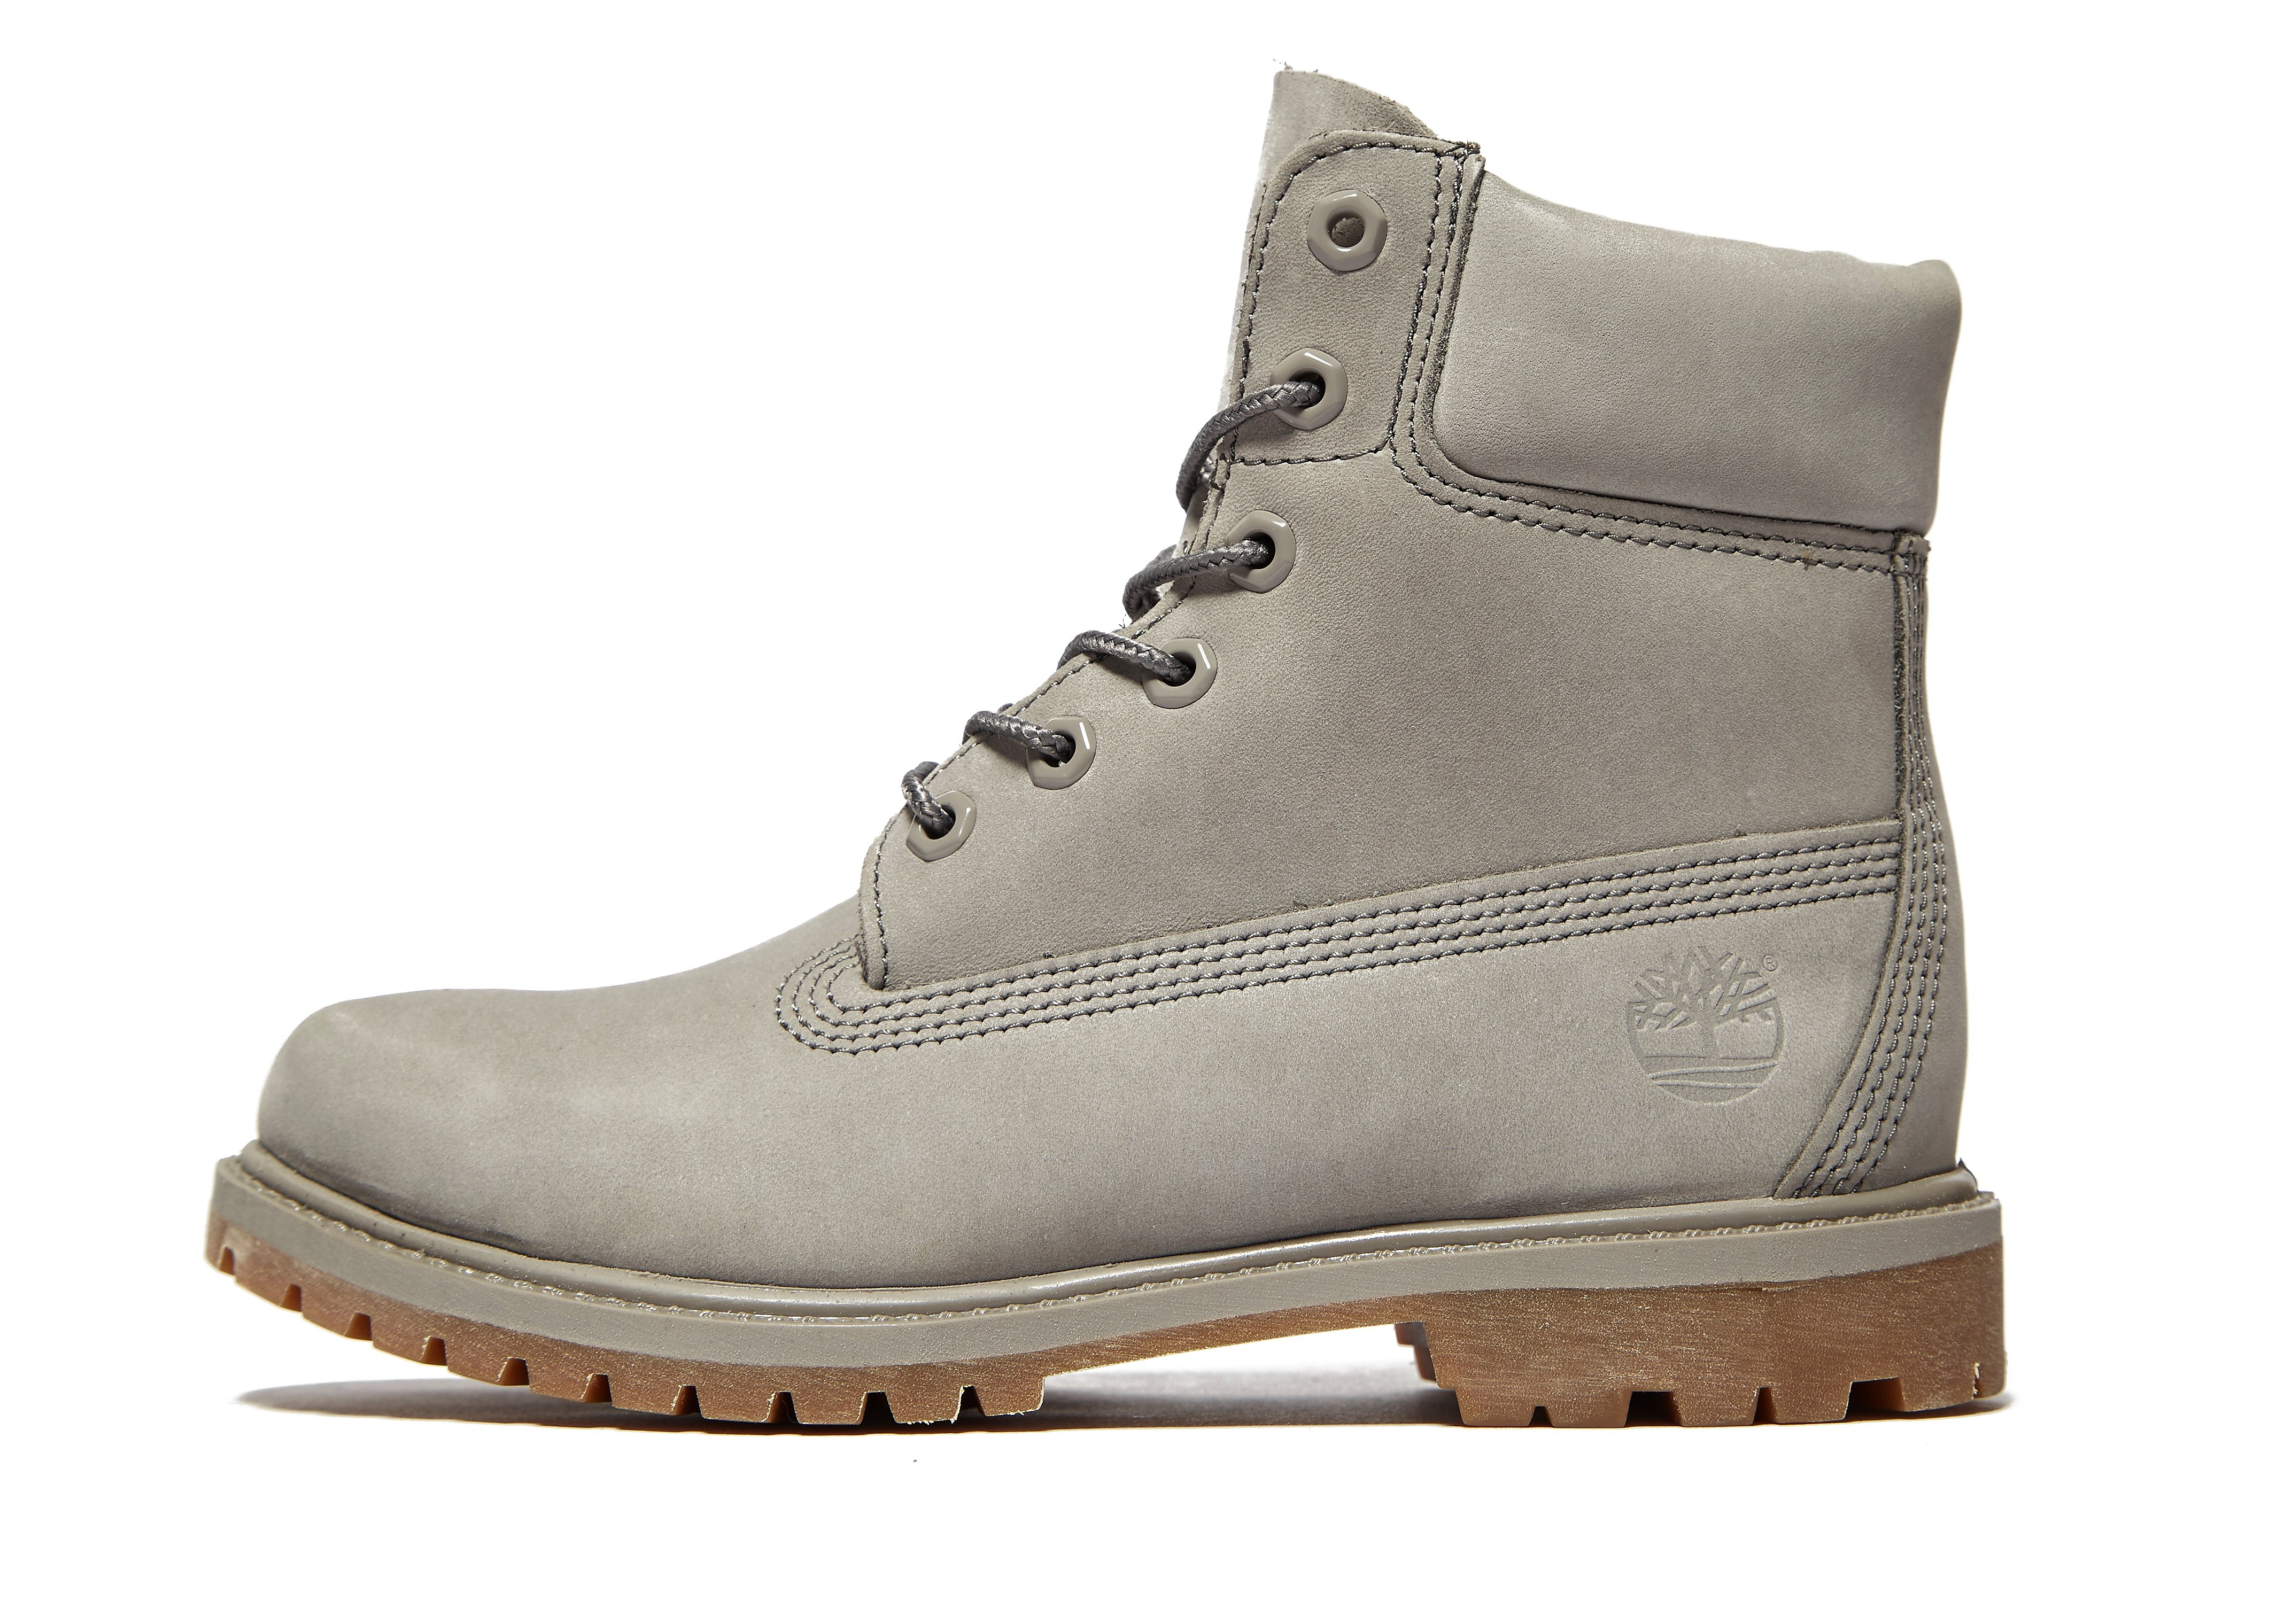 Timberland 6 Zoll Stiefel